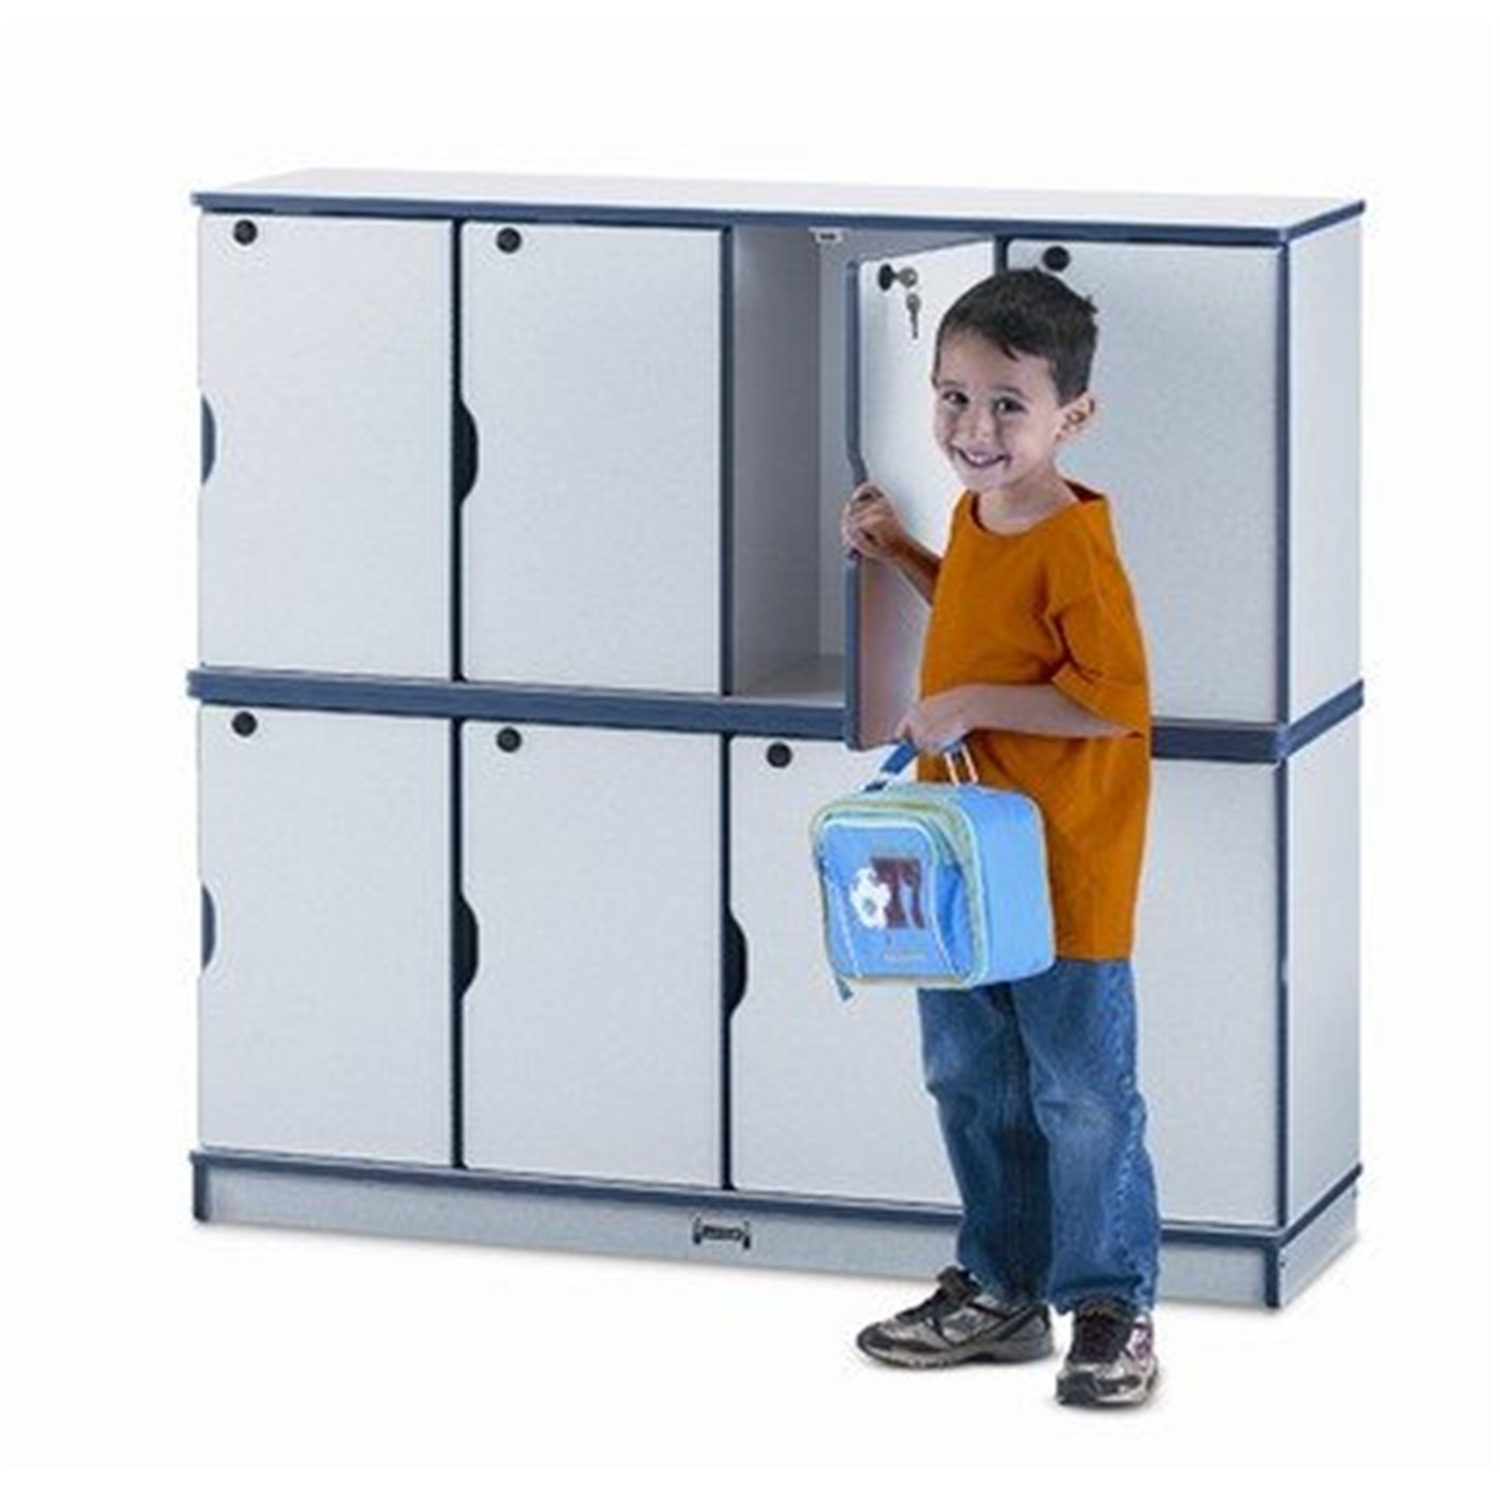 Stacking Lockable Lockers - Triple Stack - Black - [4696JC004]